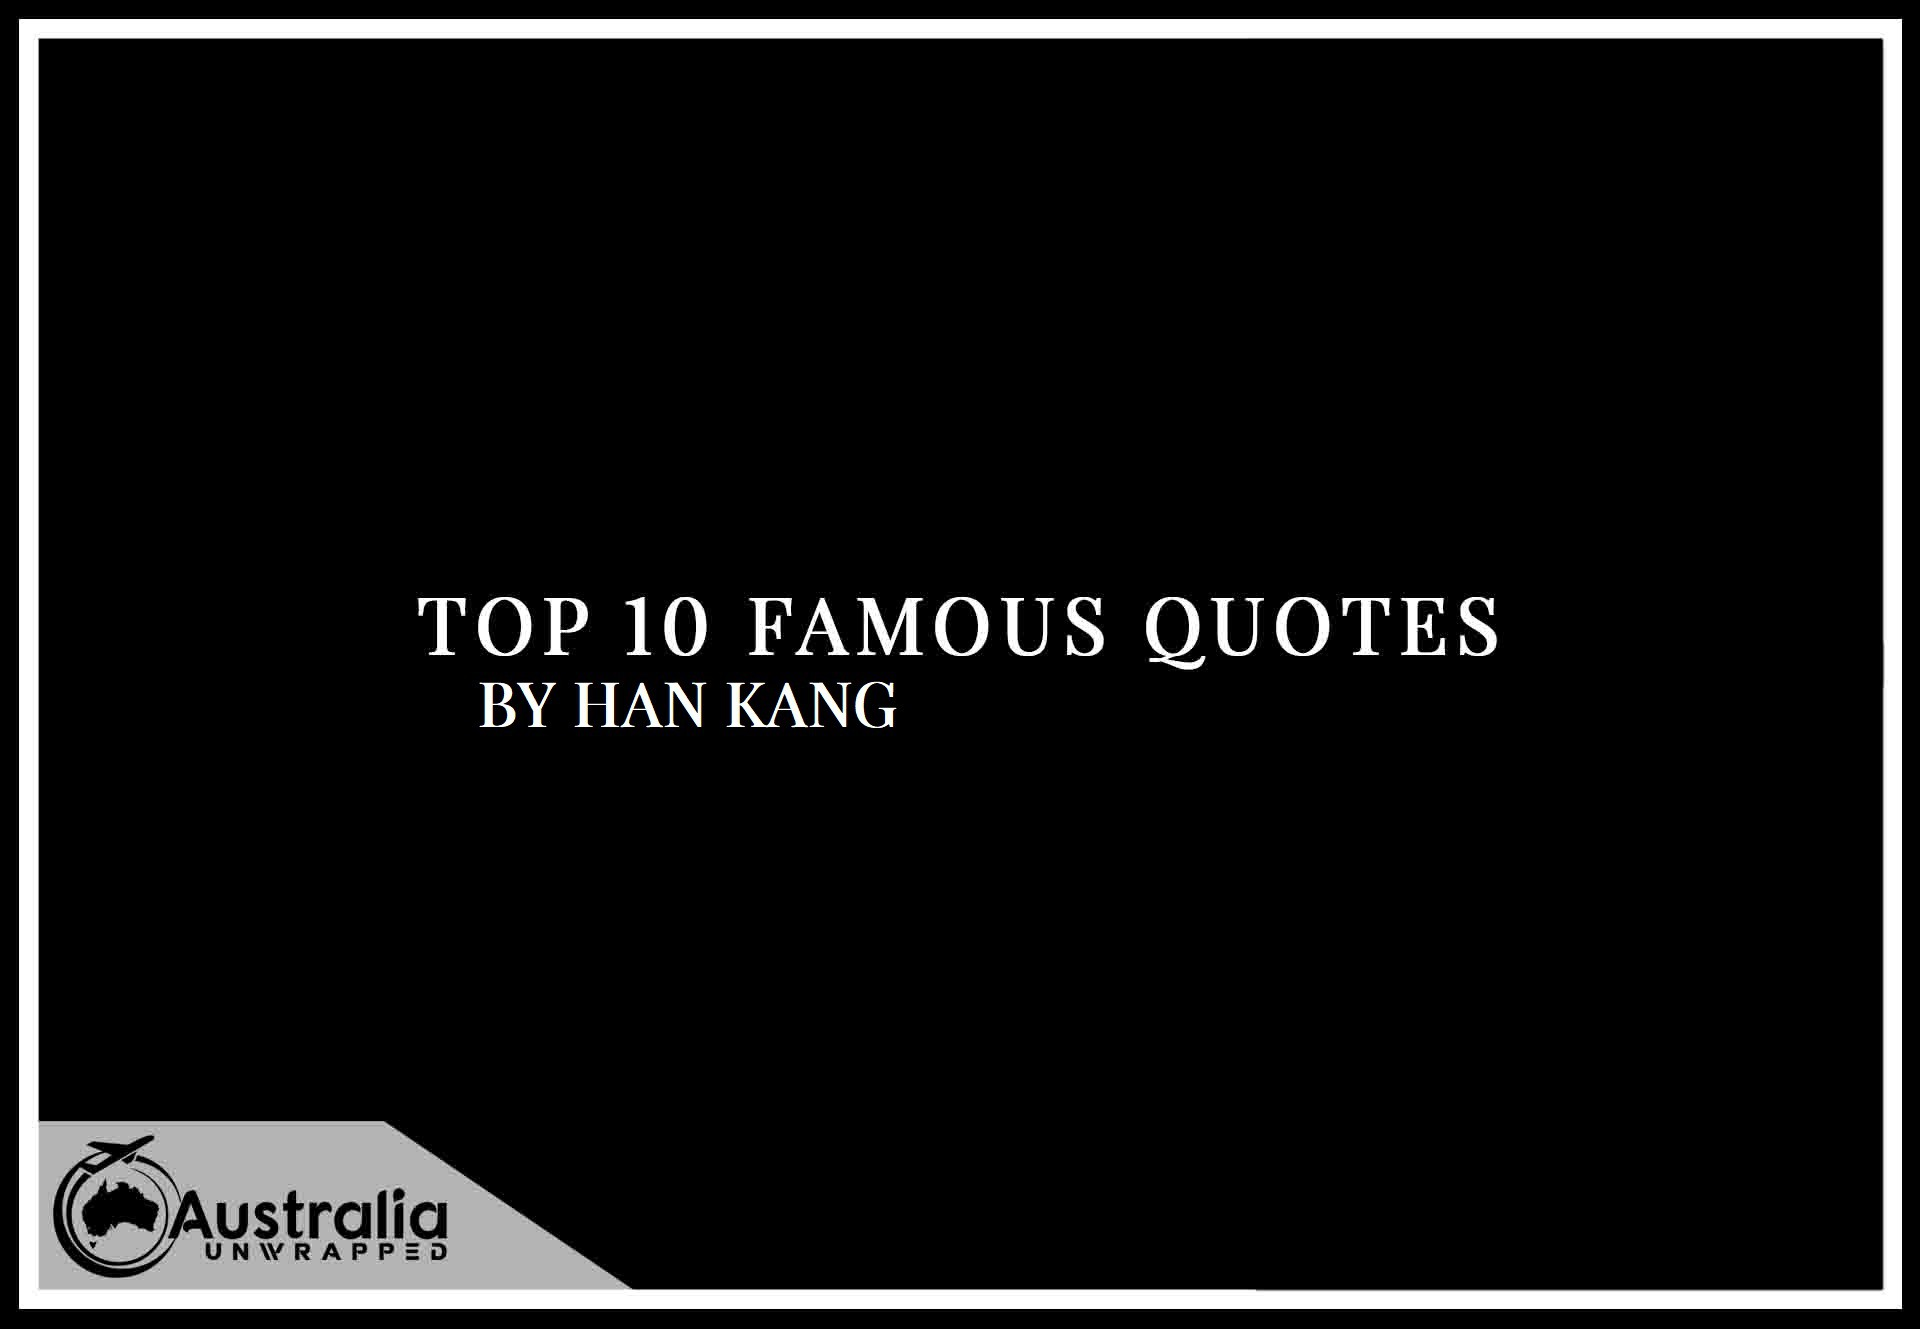 Top 10 Famous Quotes by Author Han Kang